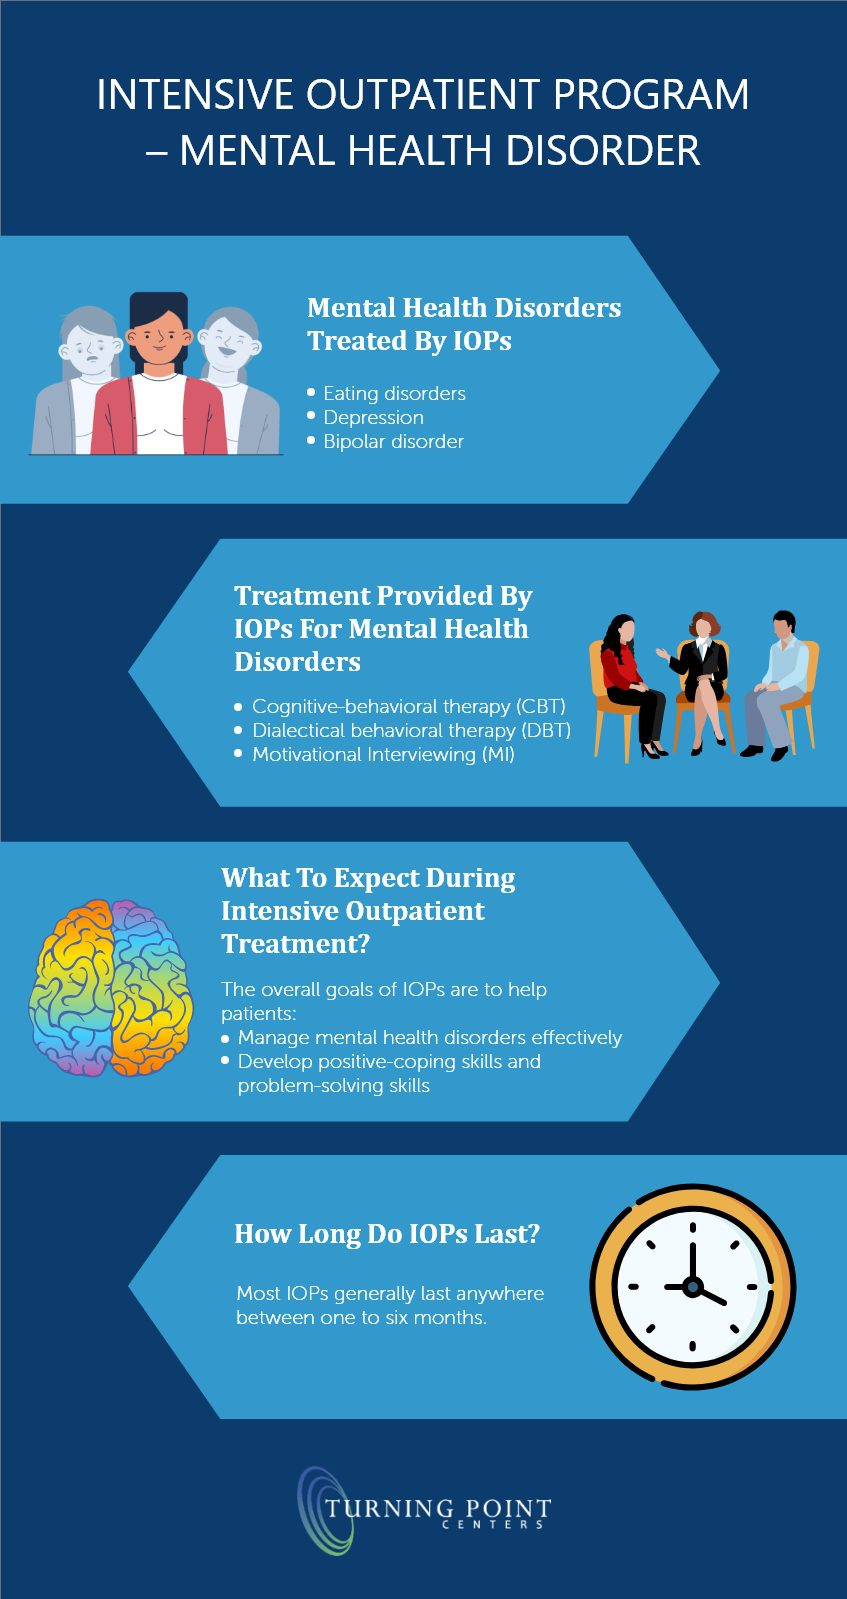 Intensive Outpatient Program – Mental Health Disorder - Turning Point